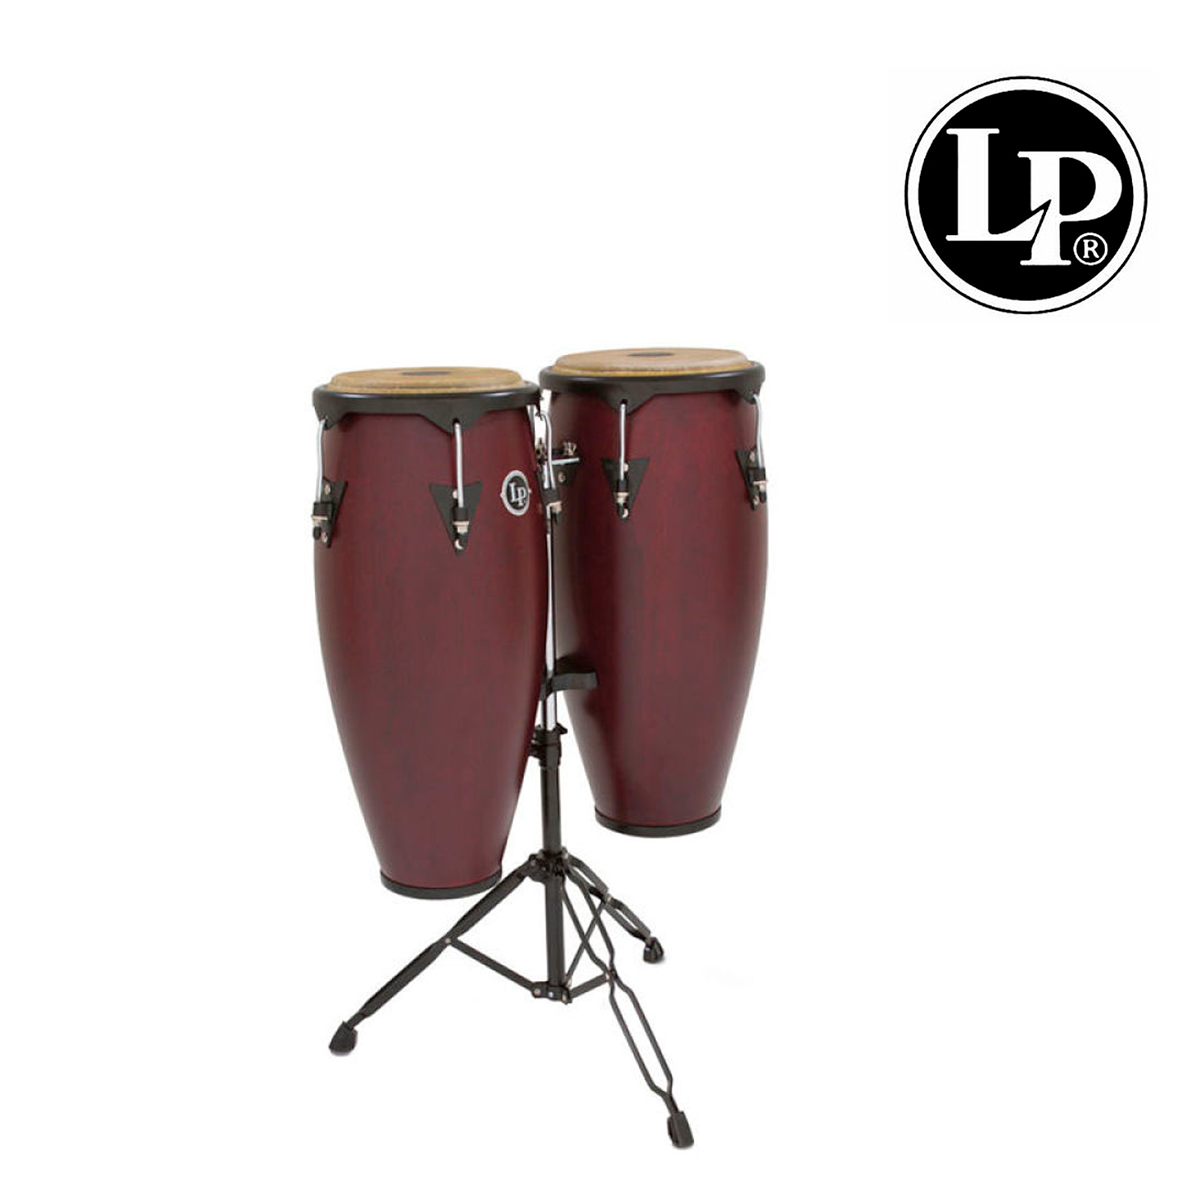 "CONGAS LP CITY 11"" Y 12"" MAD.VINO CON ATRIL LP647NY-DW"